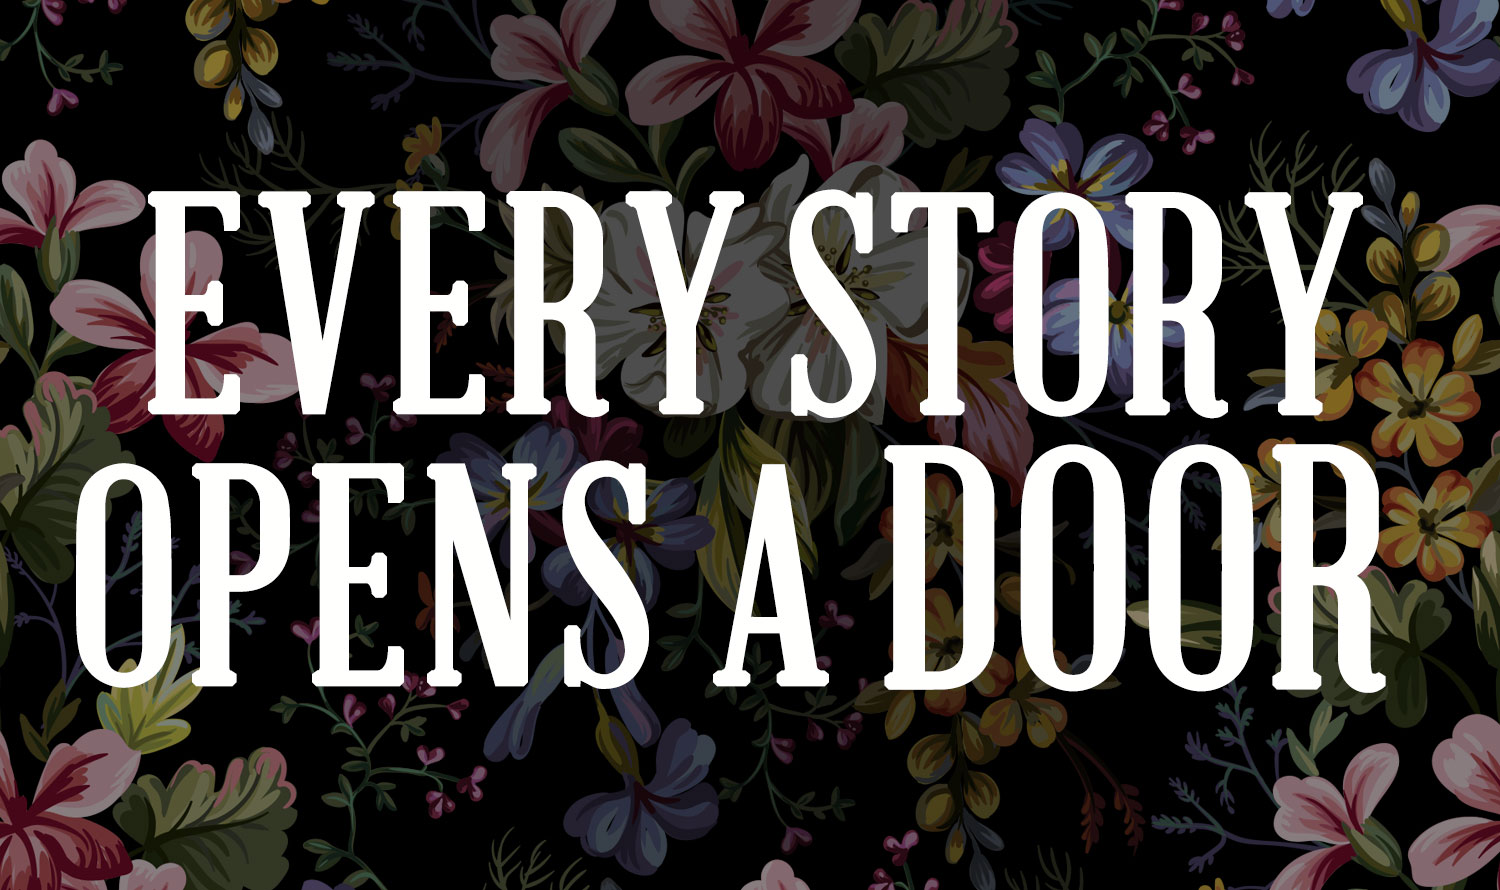 Every Story Opens A Door